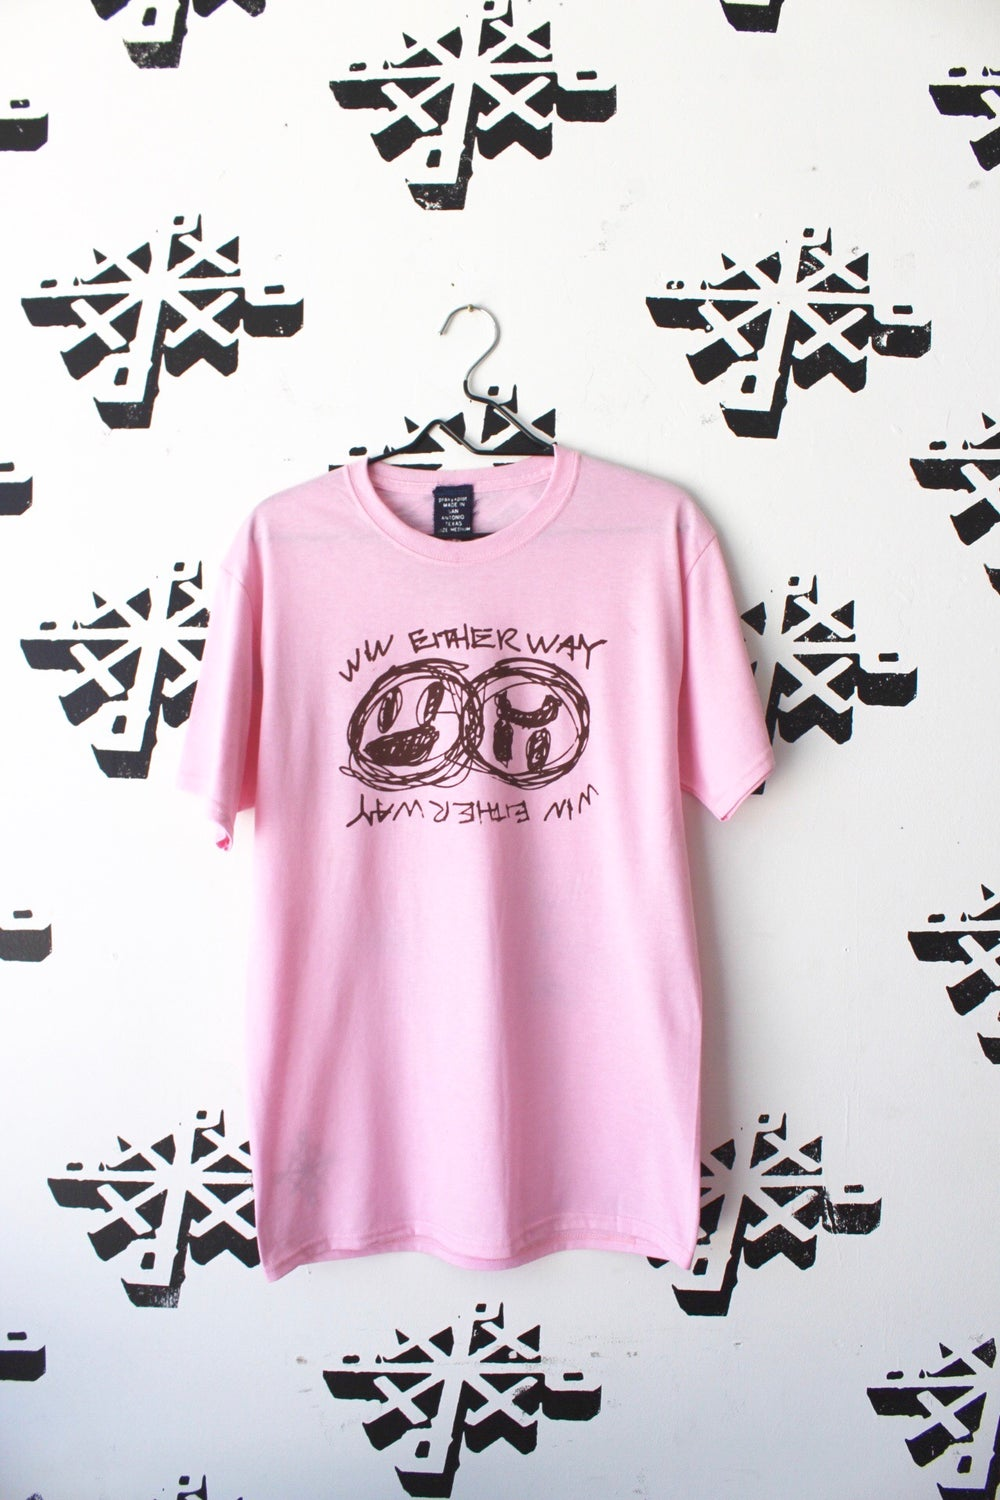 win either way tee in pink